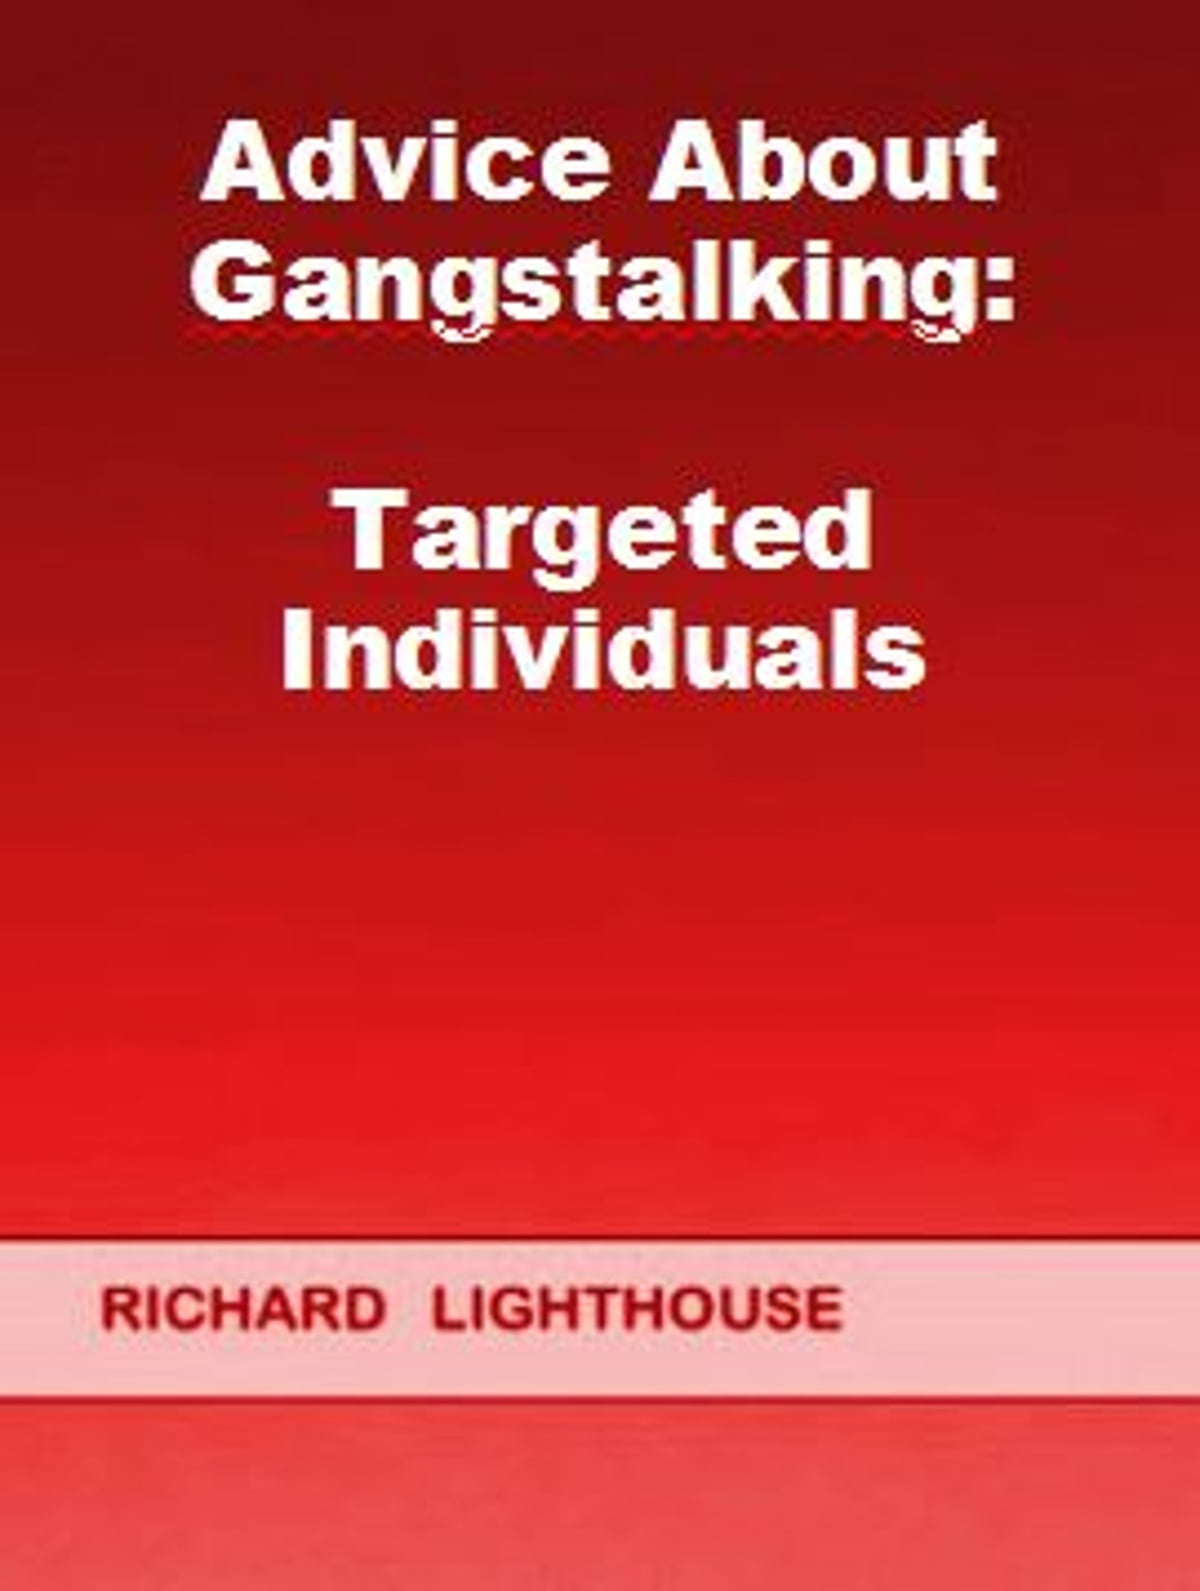 Advice About Gangstalking: Targeted Individuals eBook by